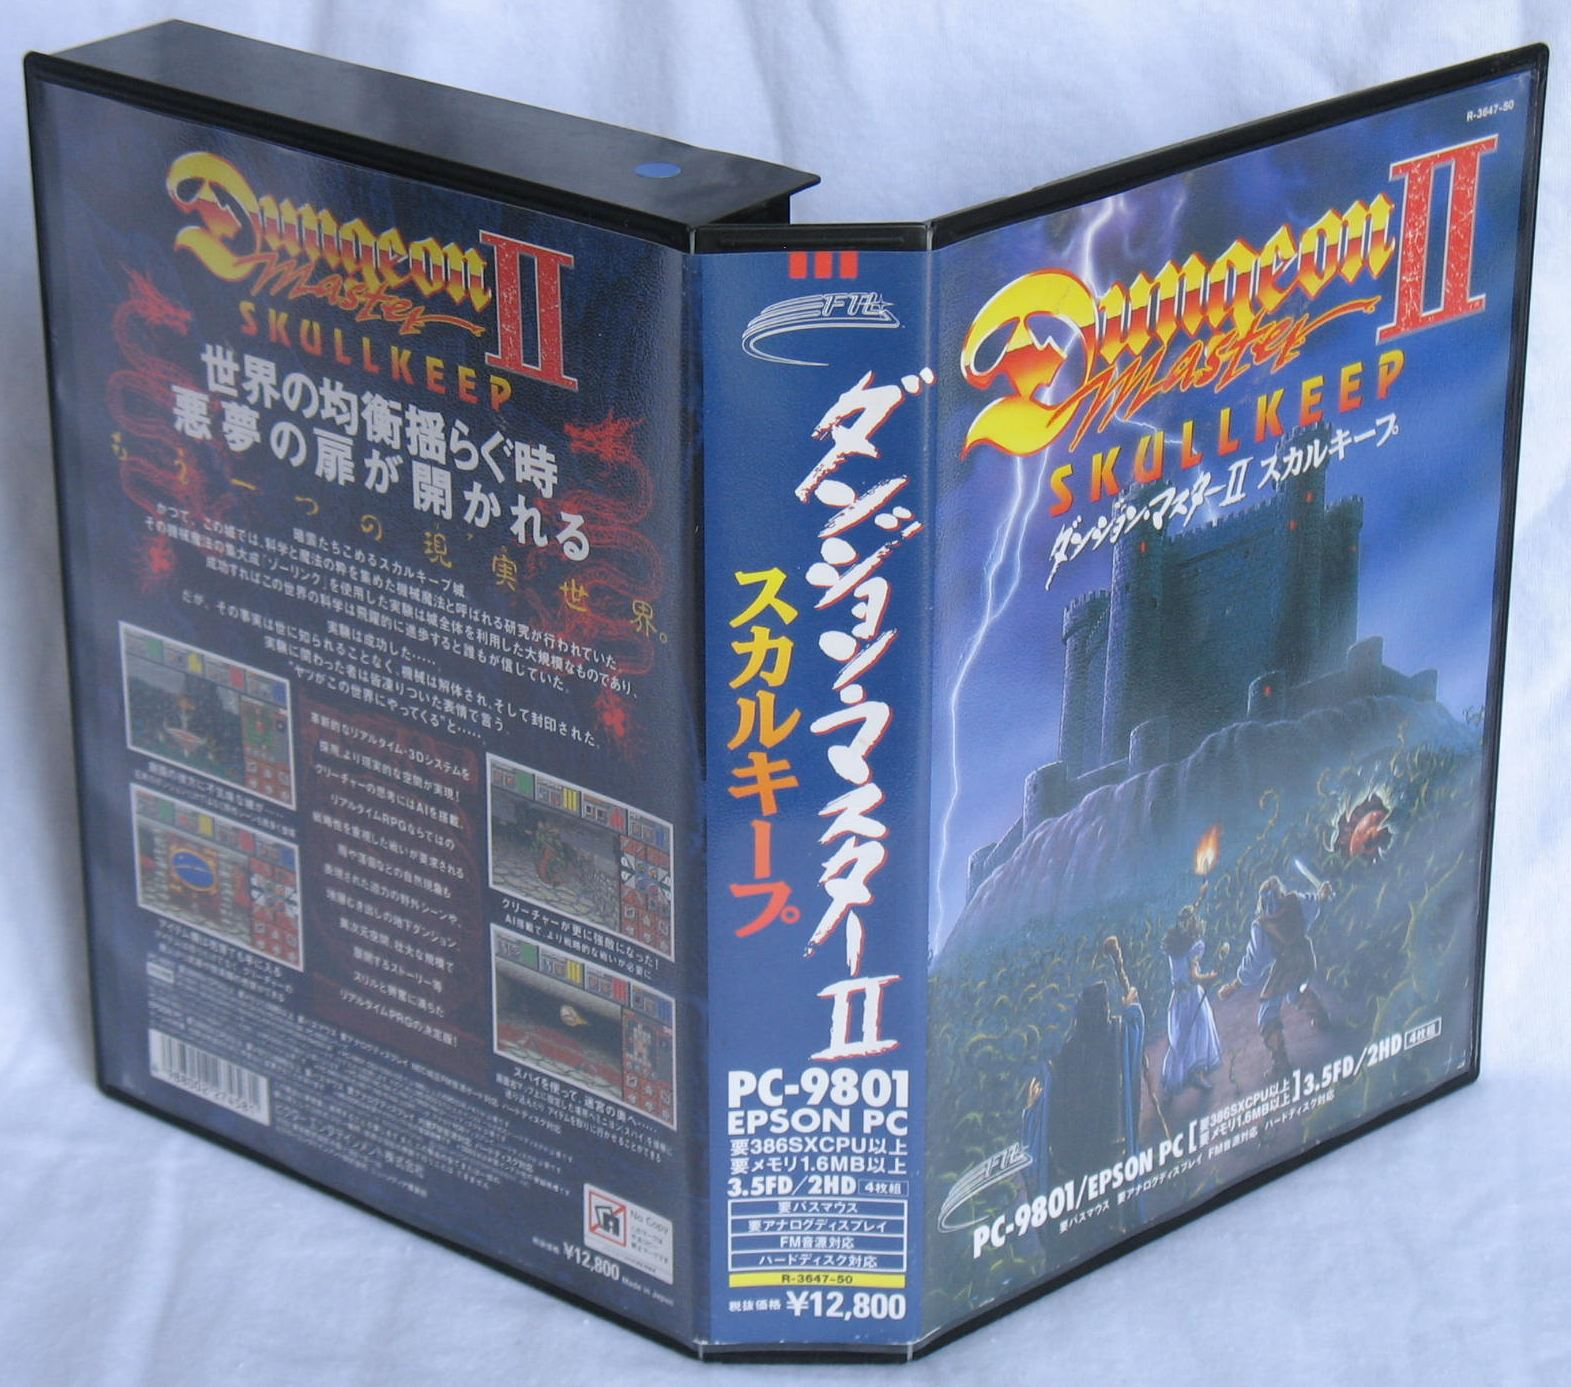 Game - Dungeon Master II - JP - PC-9801 - 3.5-inch - Box - Front Back Left Top - Photo